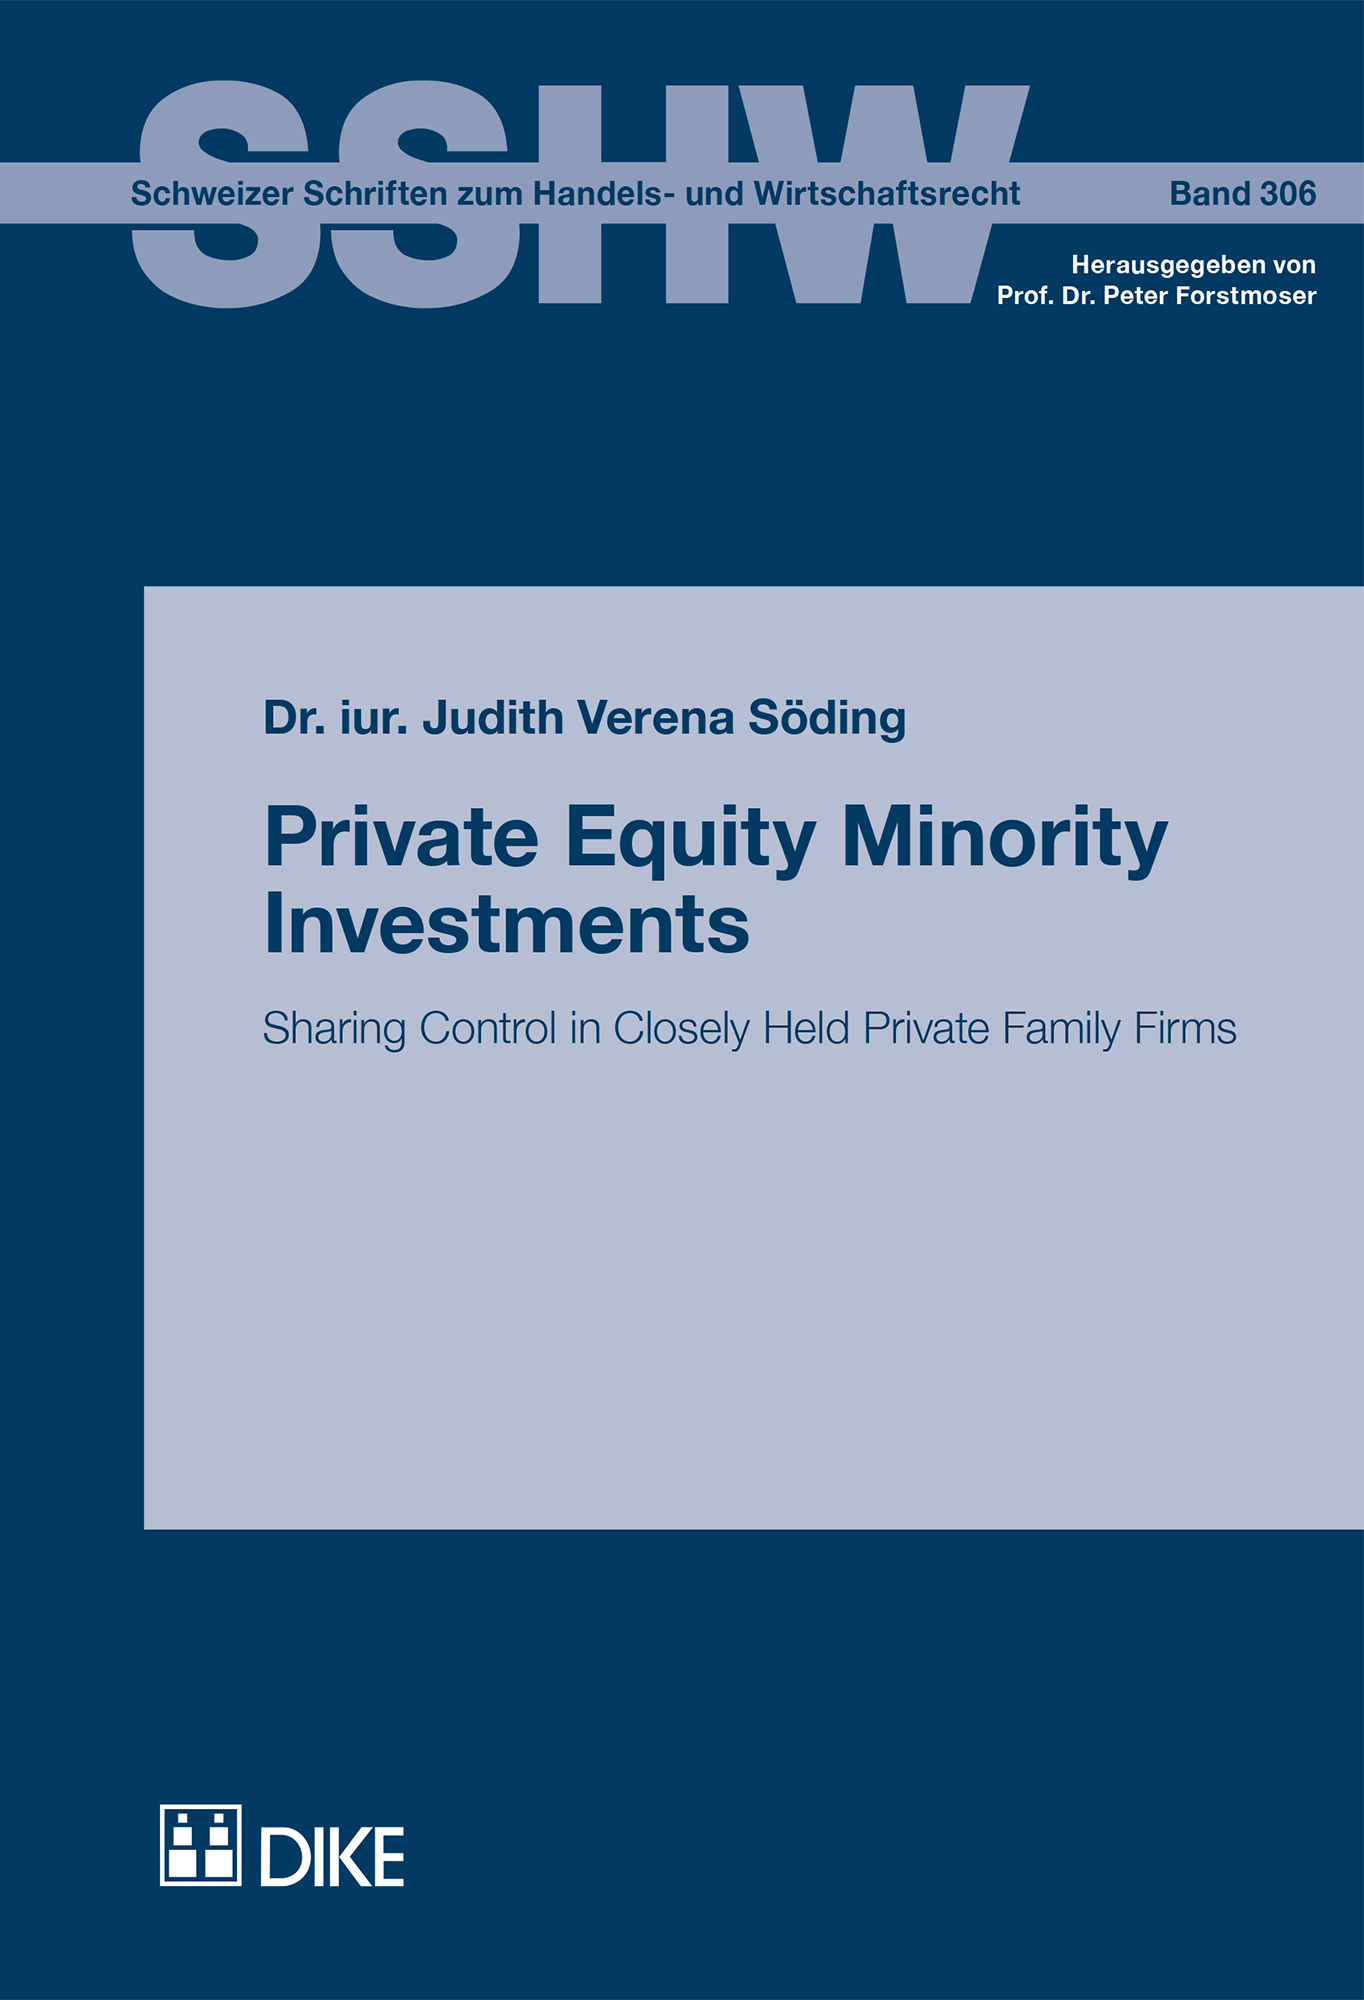 Private Equity Minority Investments